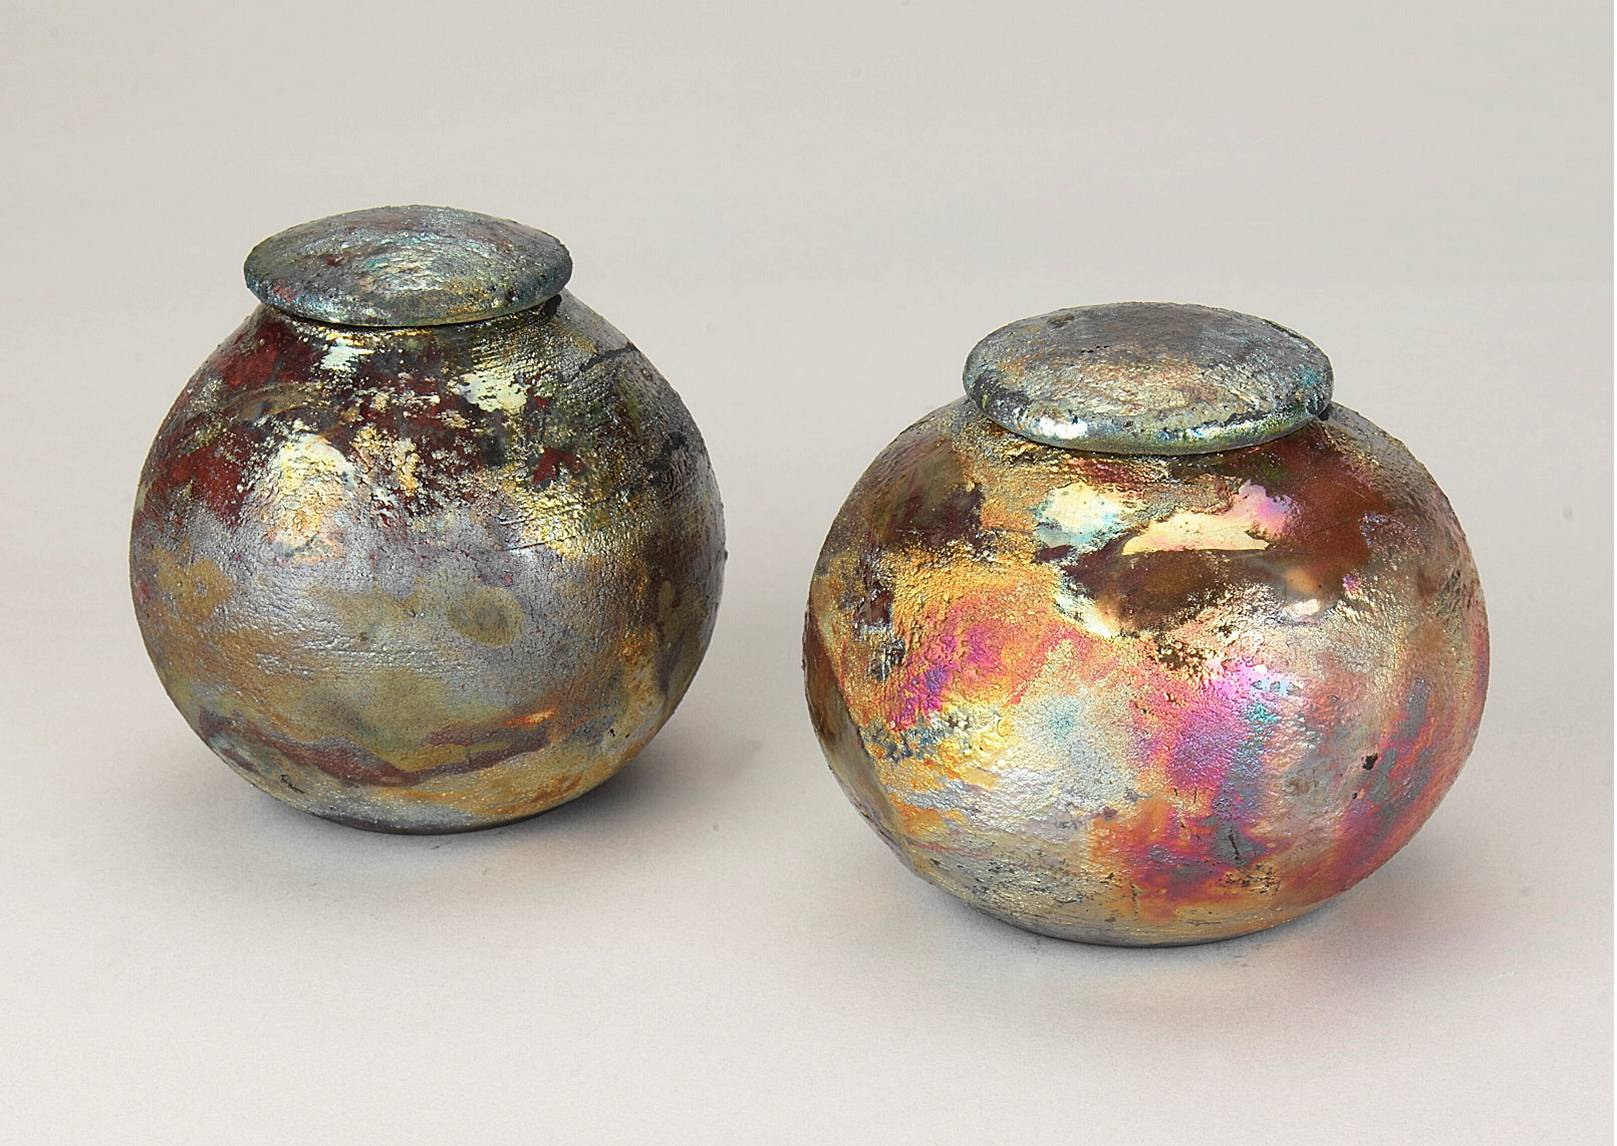 Small raku ceramic urns